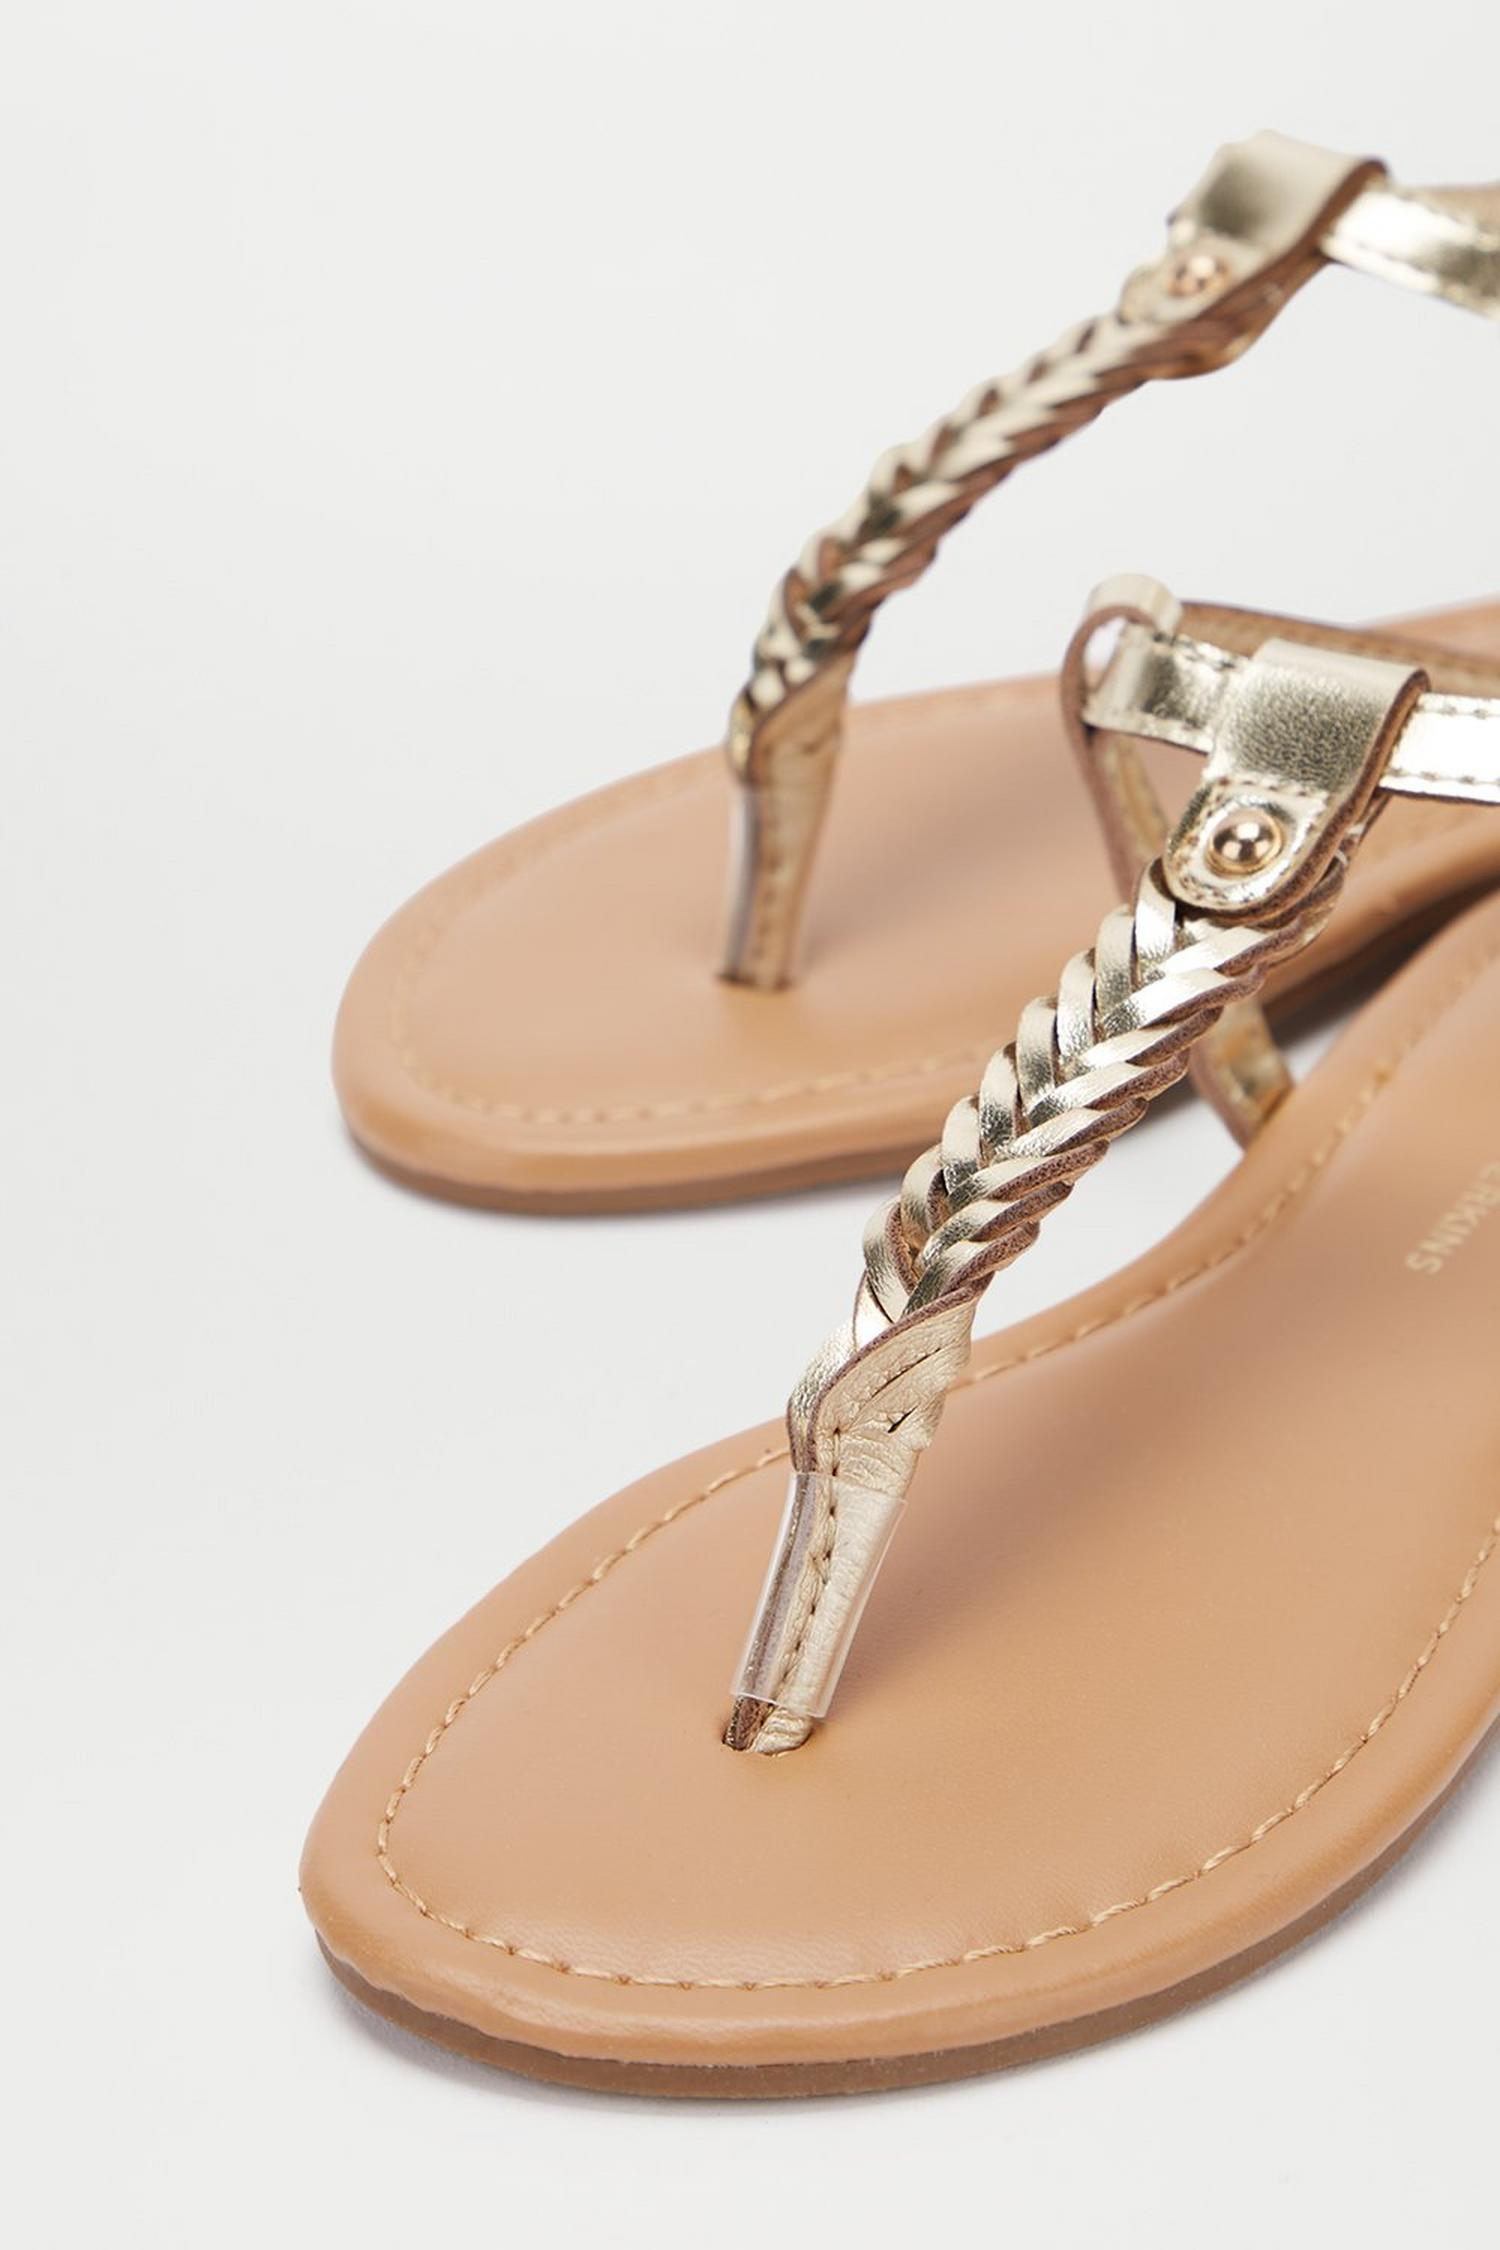 579 Gold Free Sandals image number 4